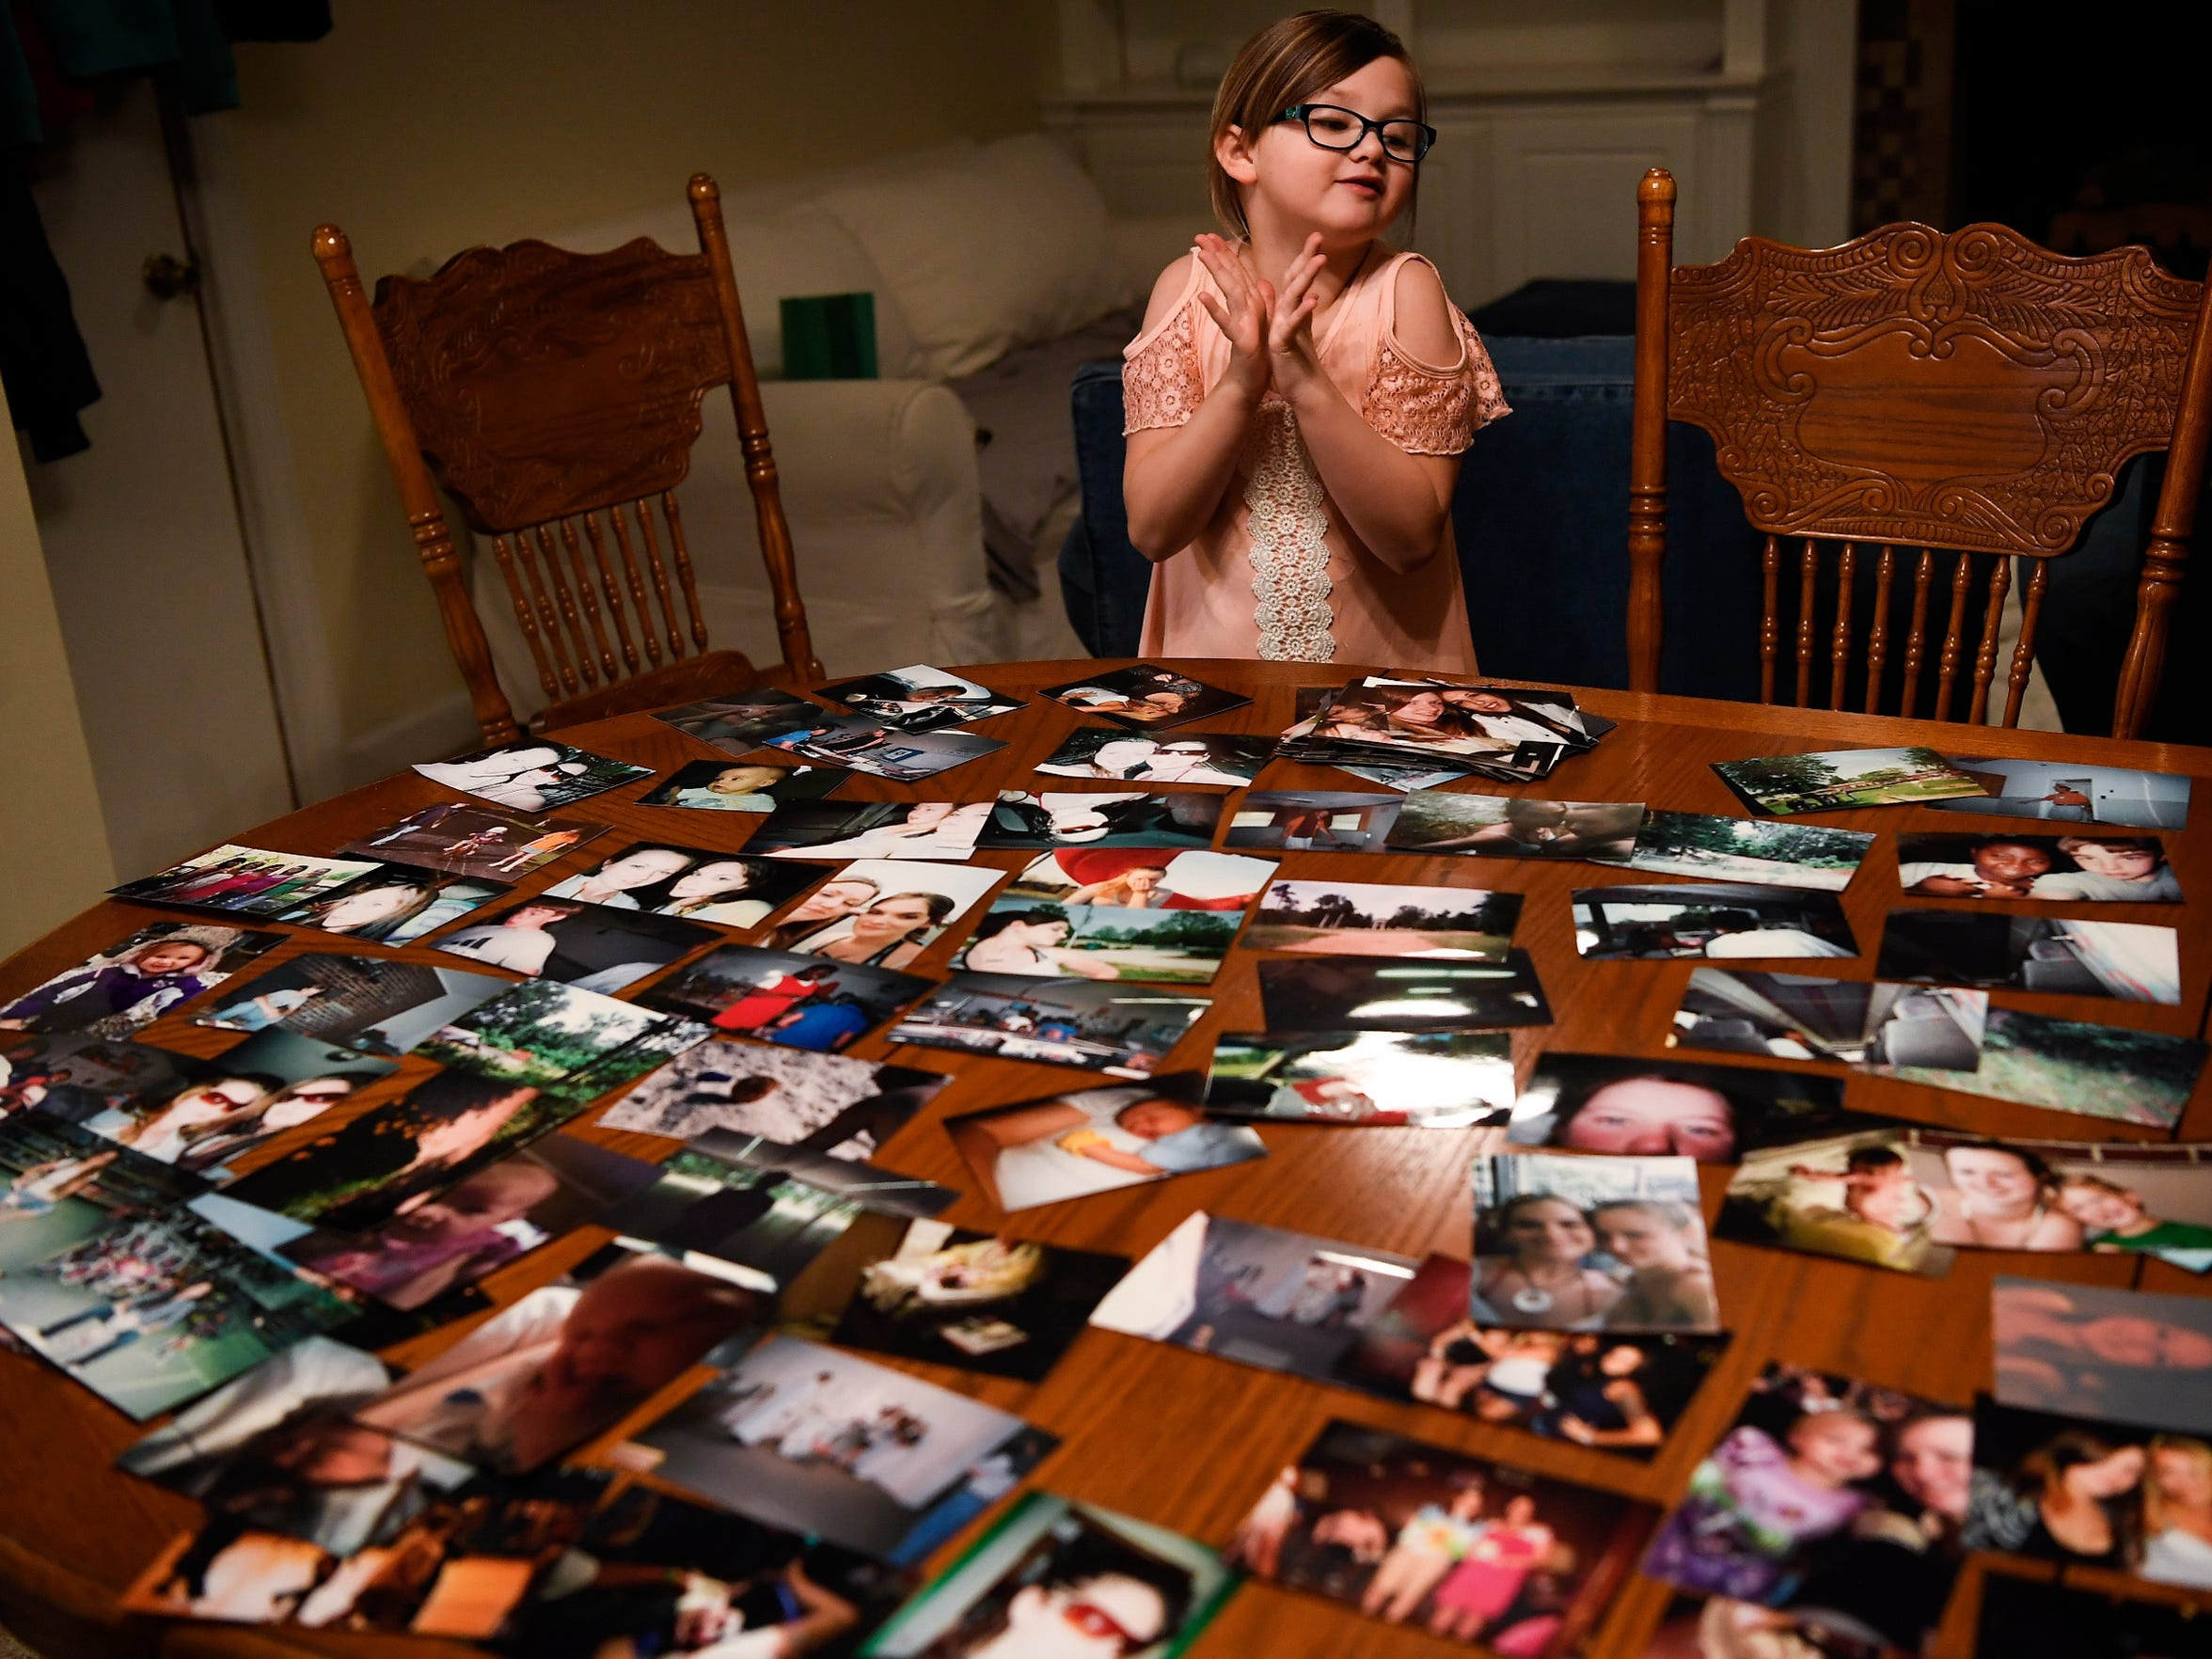 Braelyn Hardin reacts as she looks through pictures of her mother at her home in Donelson on March 20, 2018. Heather Baltz died in February at the age of 28 after battling an opioid addiction for years.